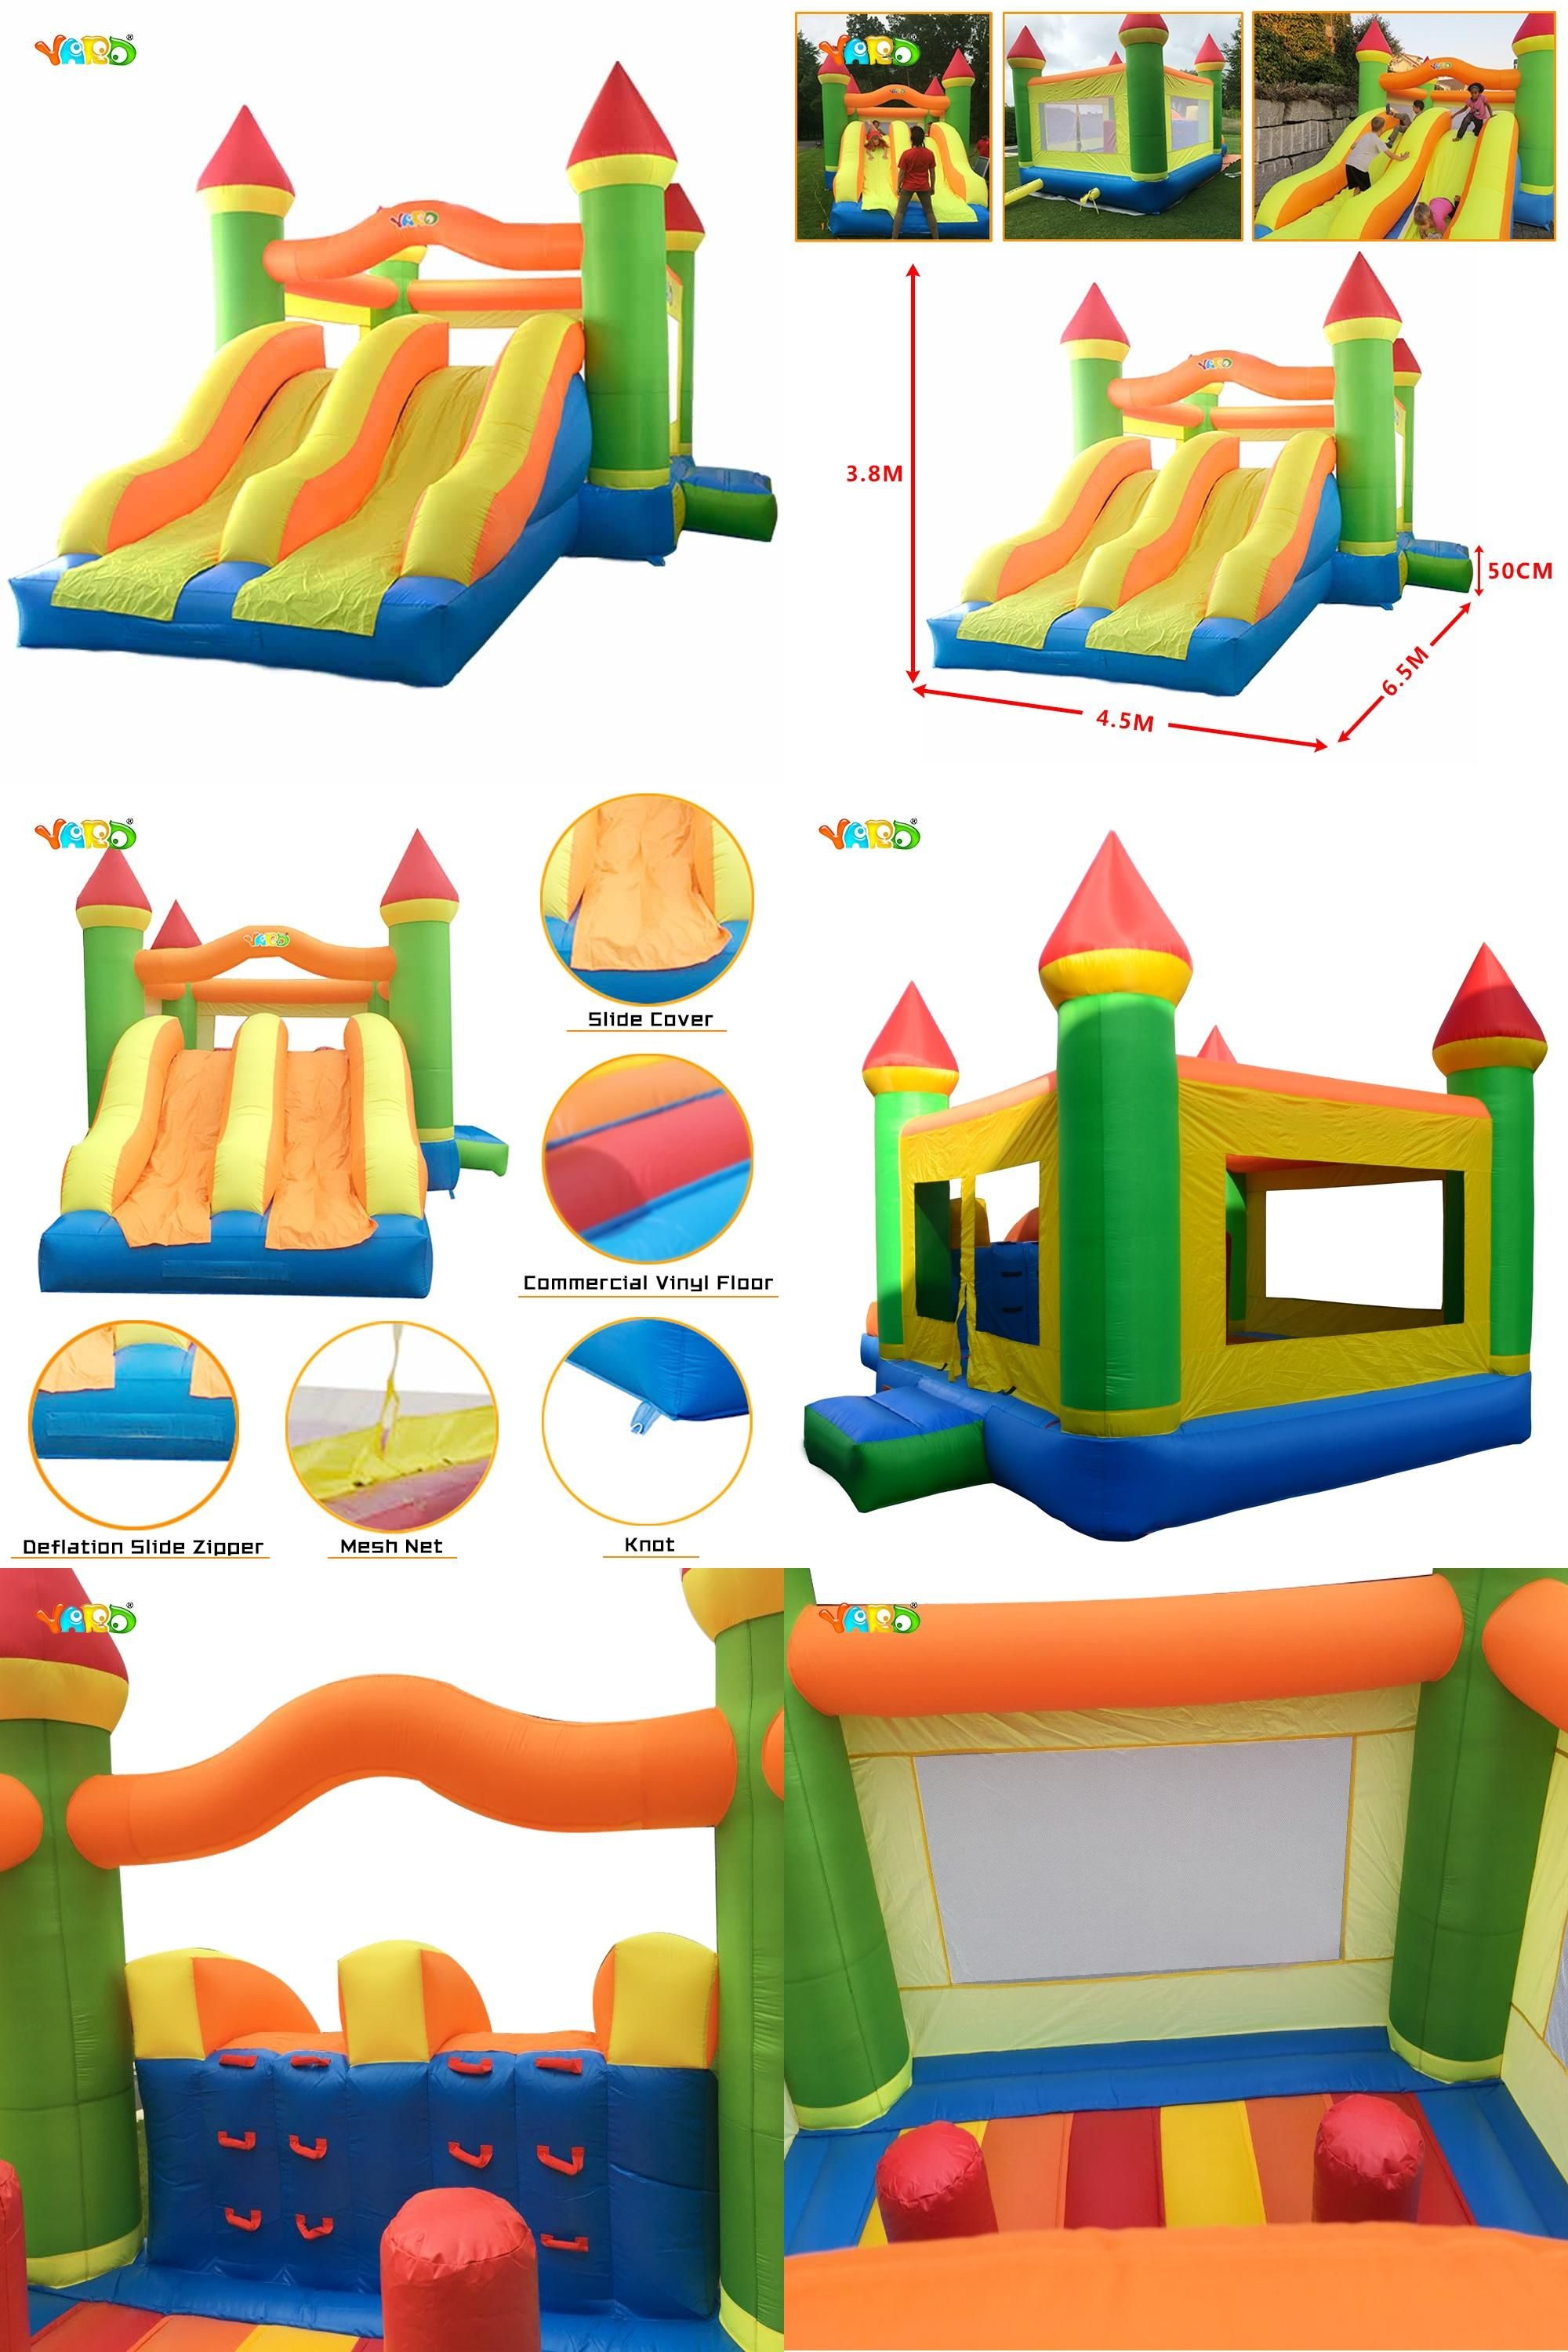 Visit to Buy] Giant Dual Slide Inflatable Castle Jumping Bouncer